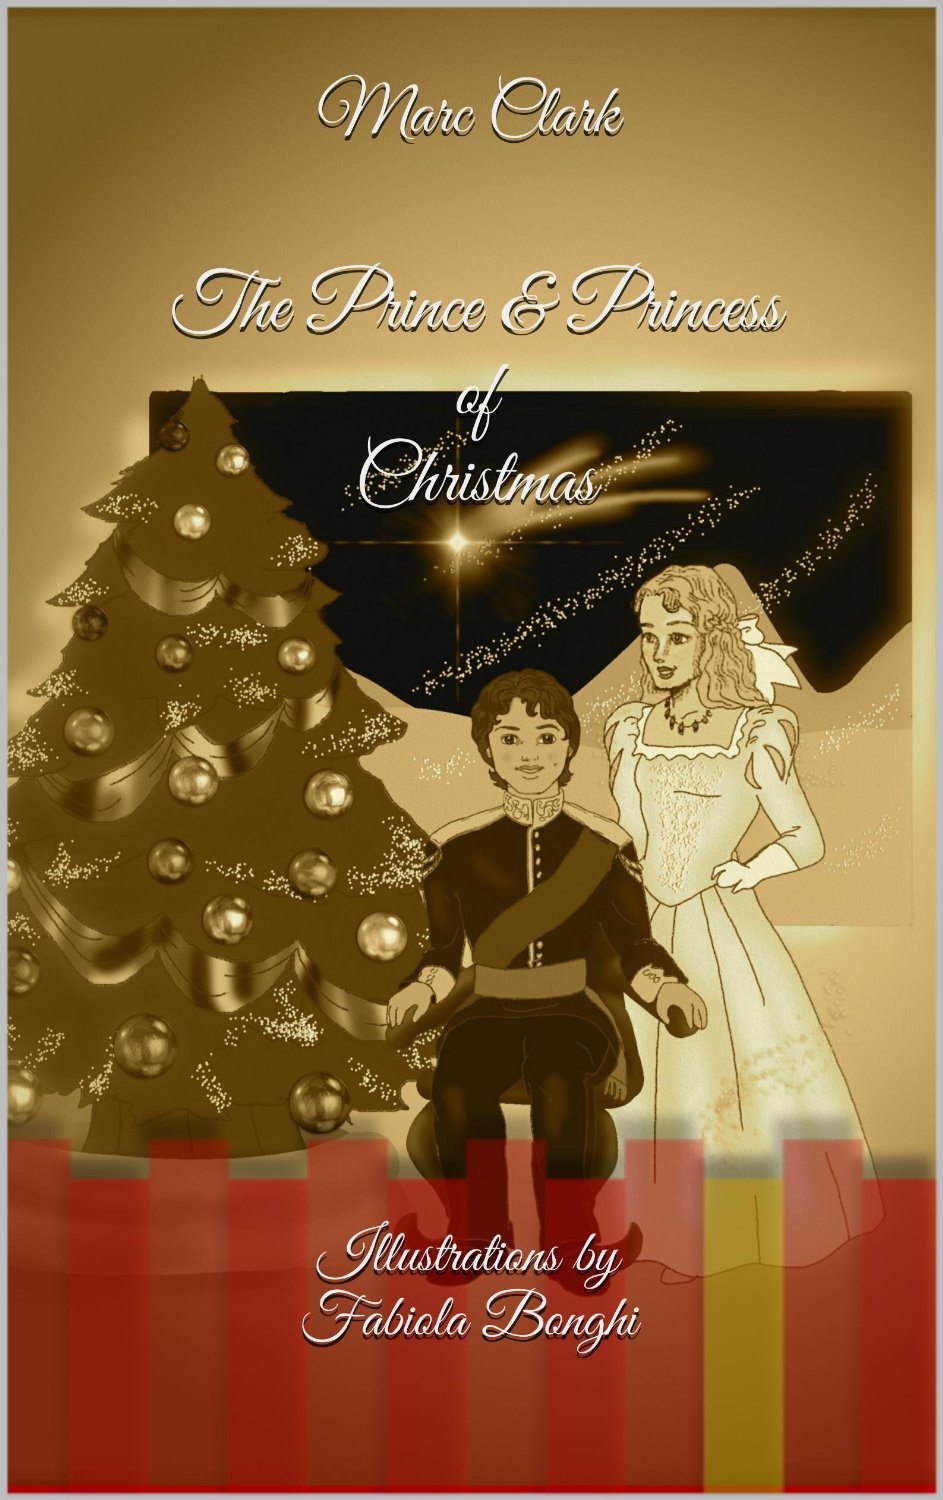 The prince and princess of Christmas